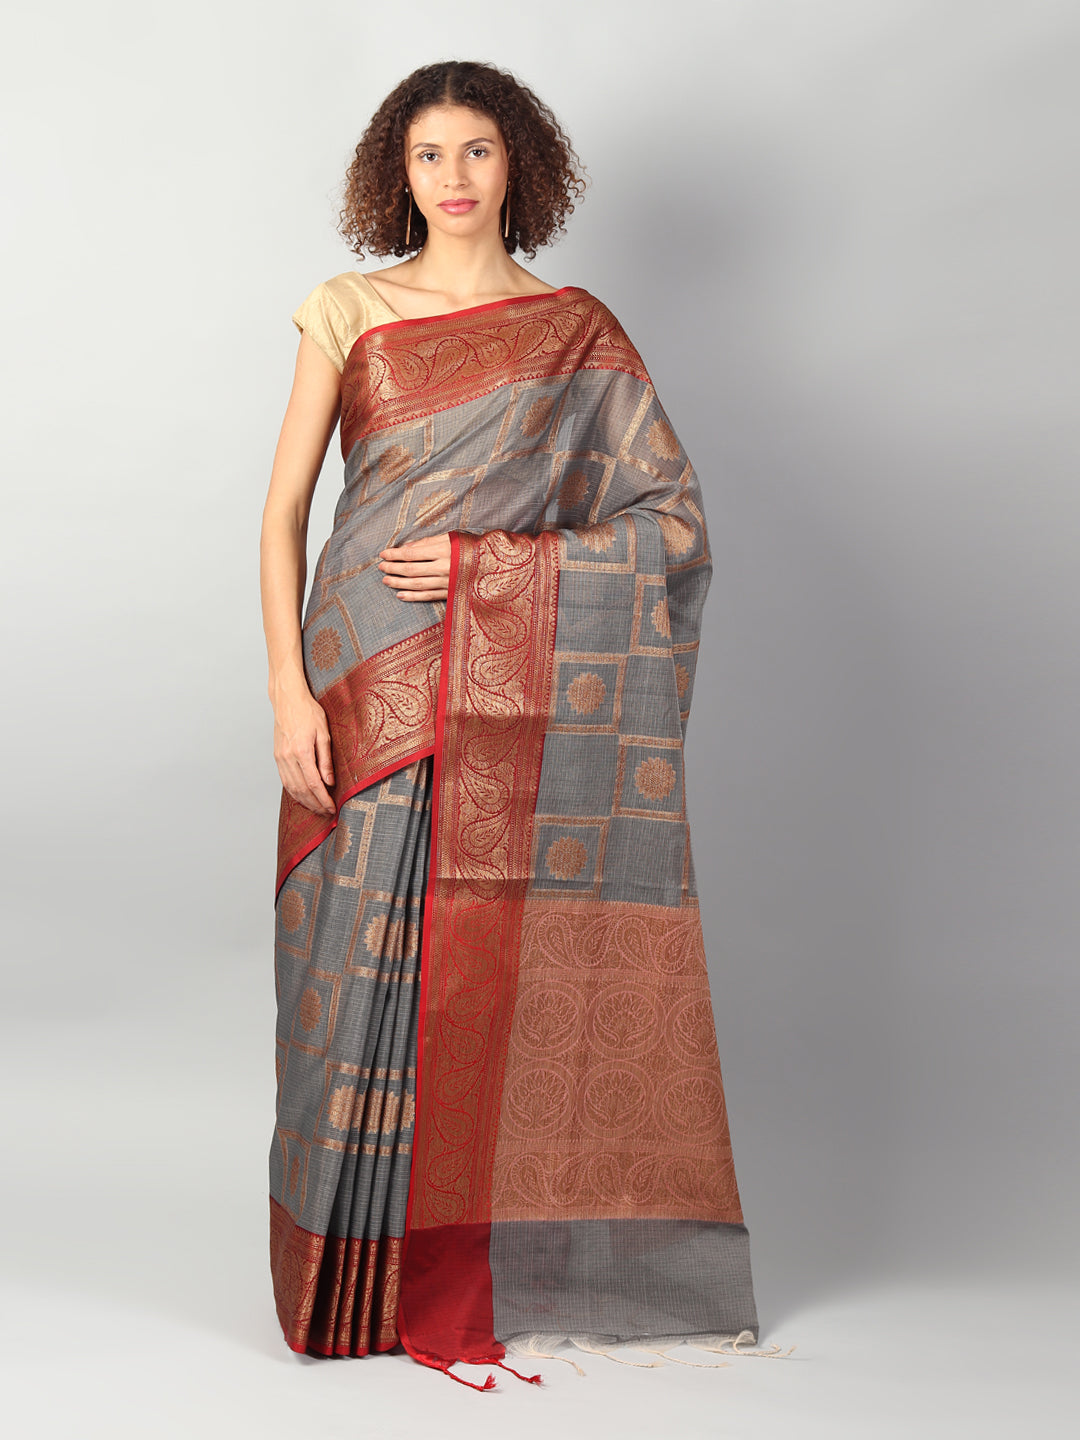 Broad checks of zari on gray kota saree with red brocade aanchal & blouse